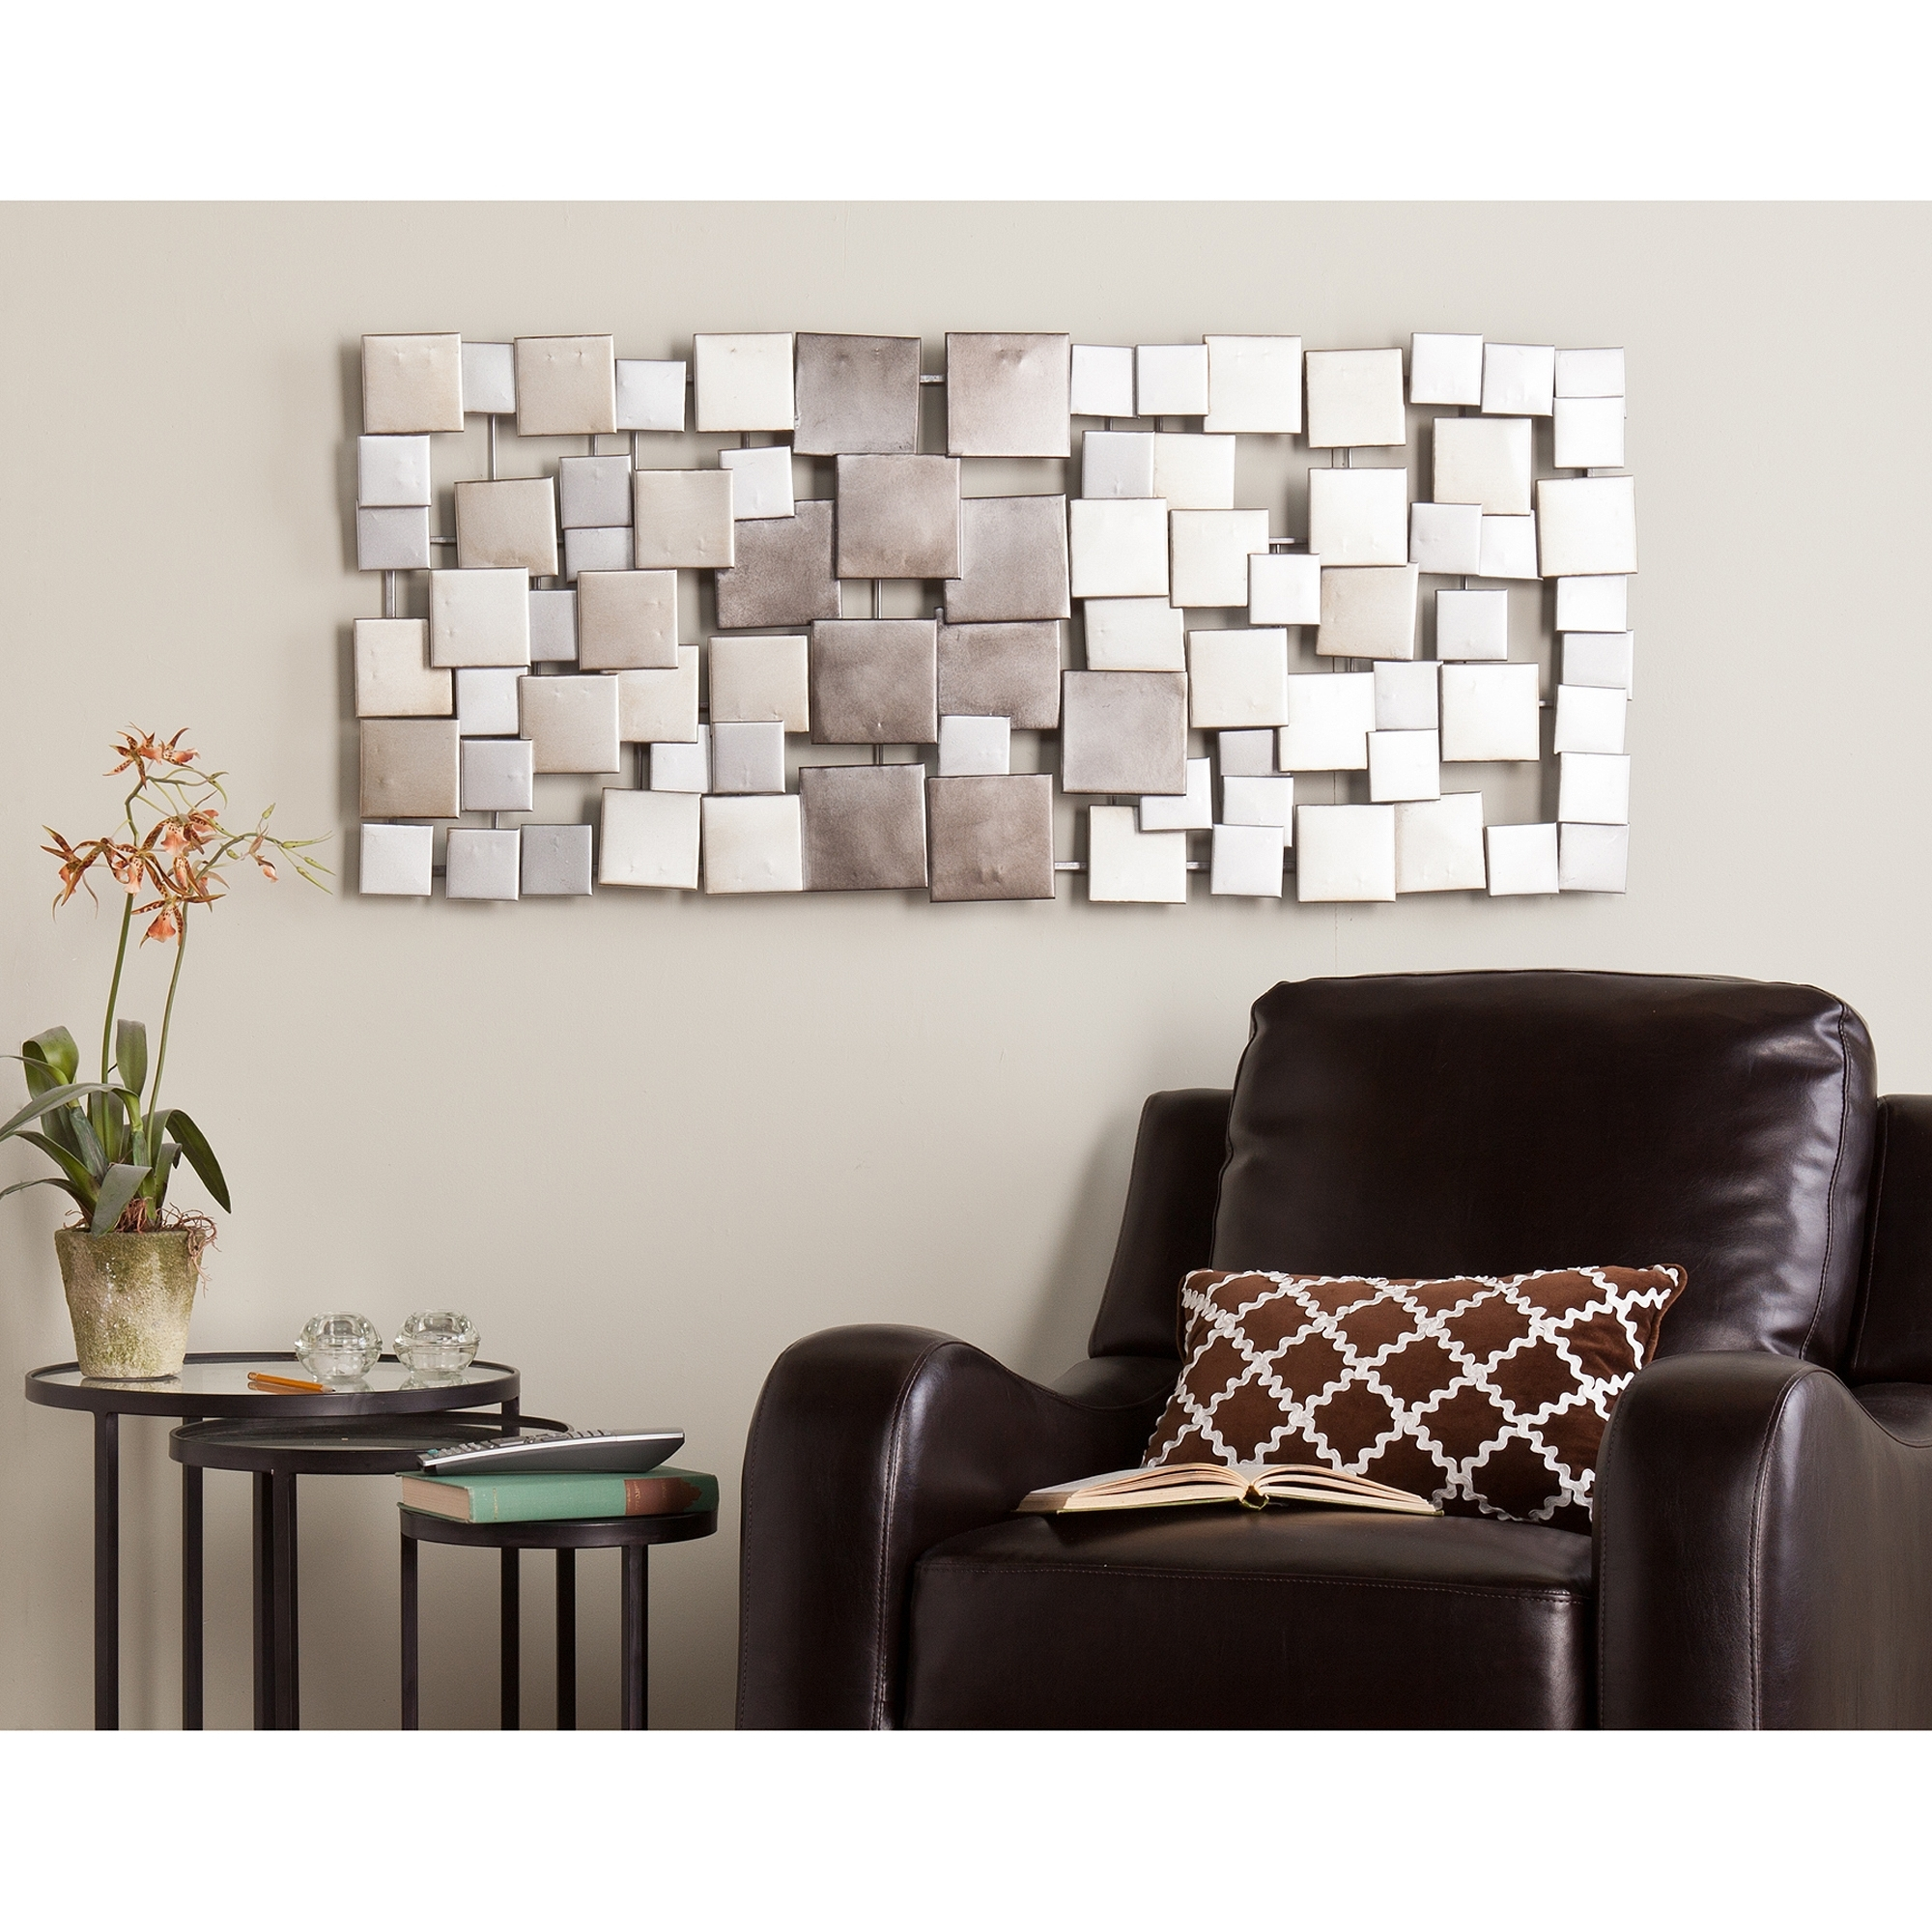 Canvas Wall Art At Walmart For Favorite Metal Wall Art – Walmart (Gallery 12 of 15)